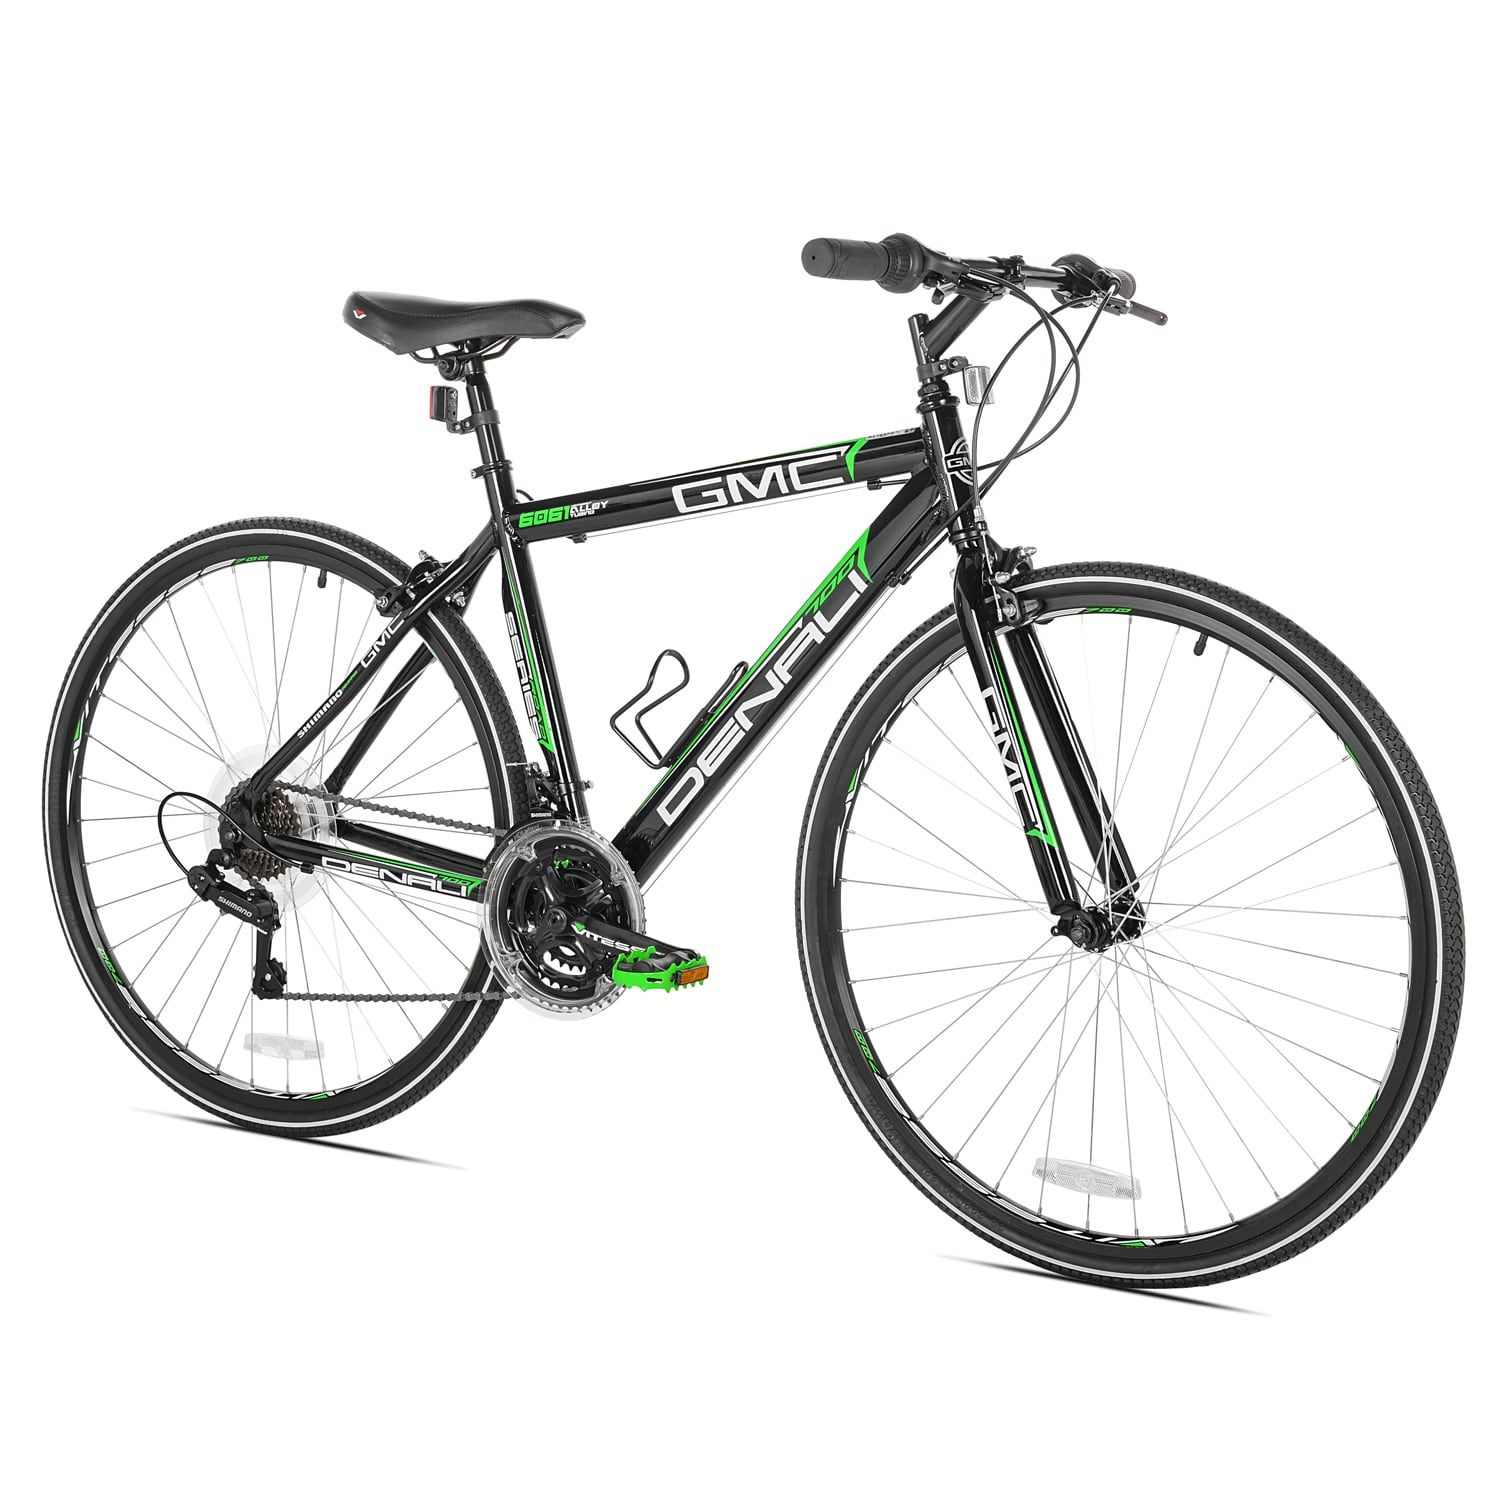 Men S Gmc Medium Frame 700c Denali Flat Bar Road Bike Flat Bar Road Bike Bike Reviews City Bike